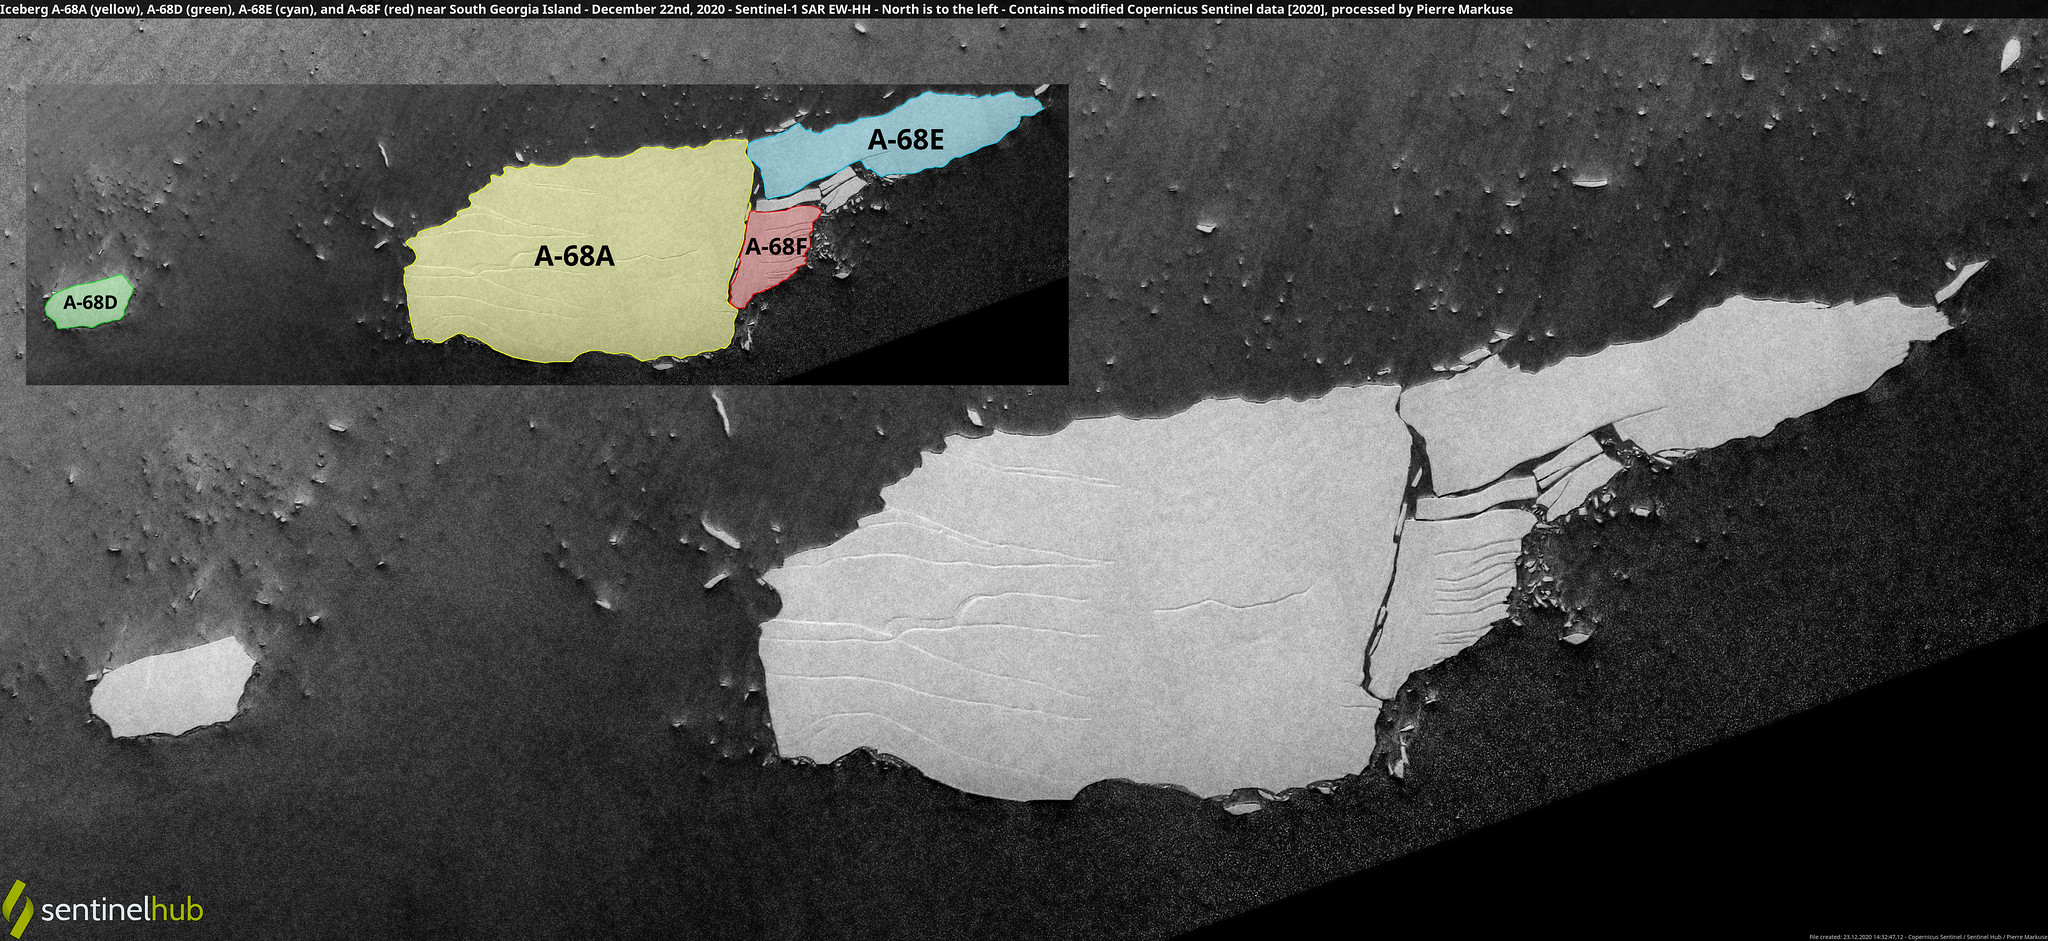 Iceberg A-68A (yellow), A-68D (green), A-68E (cyan), and A-68F (red) near South Georgia Island - December 22nd, 2020 - Sentinel-1 SAR EW-HH - North is to the left Copernicus/Pierre Markuse